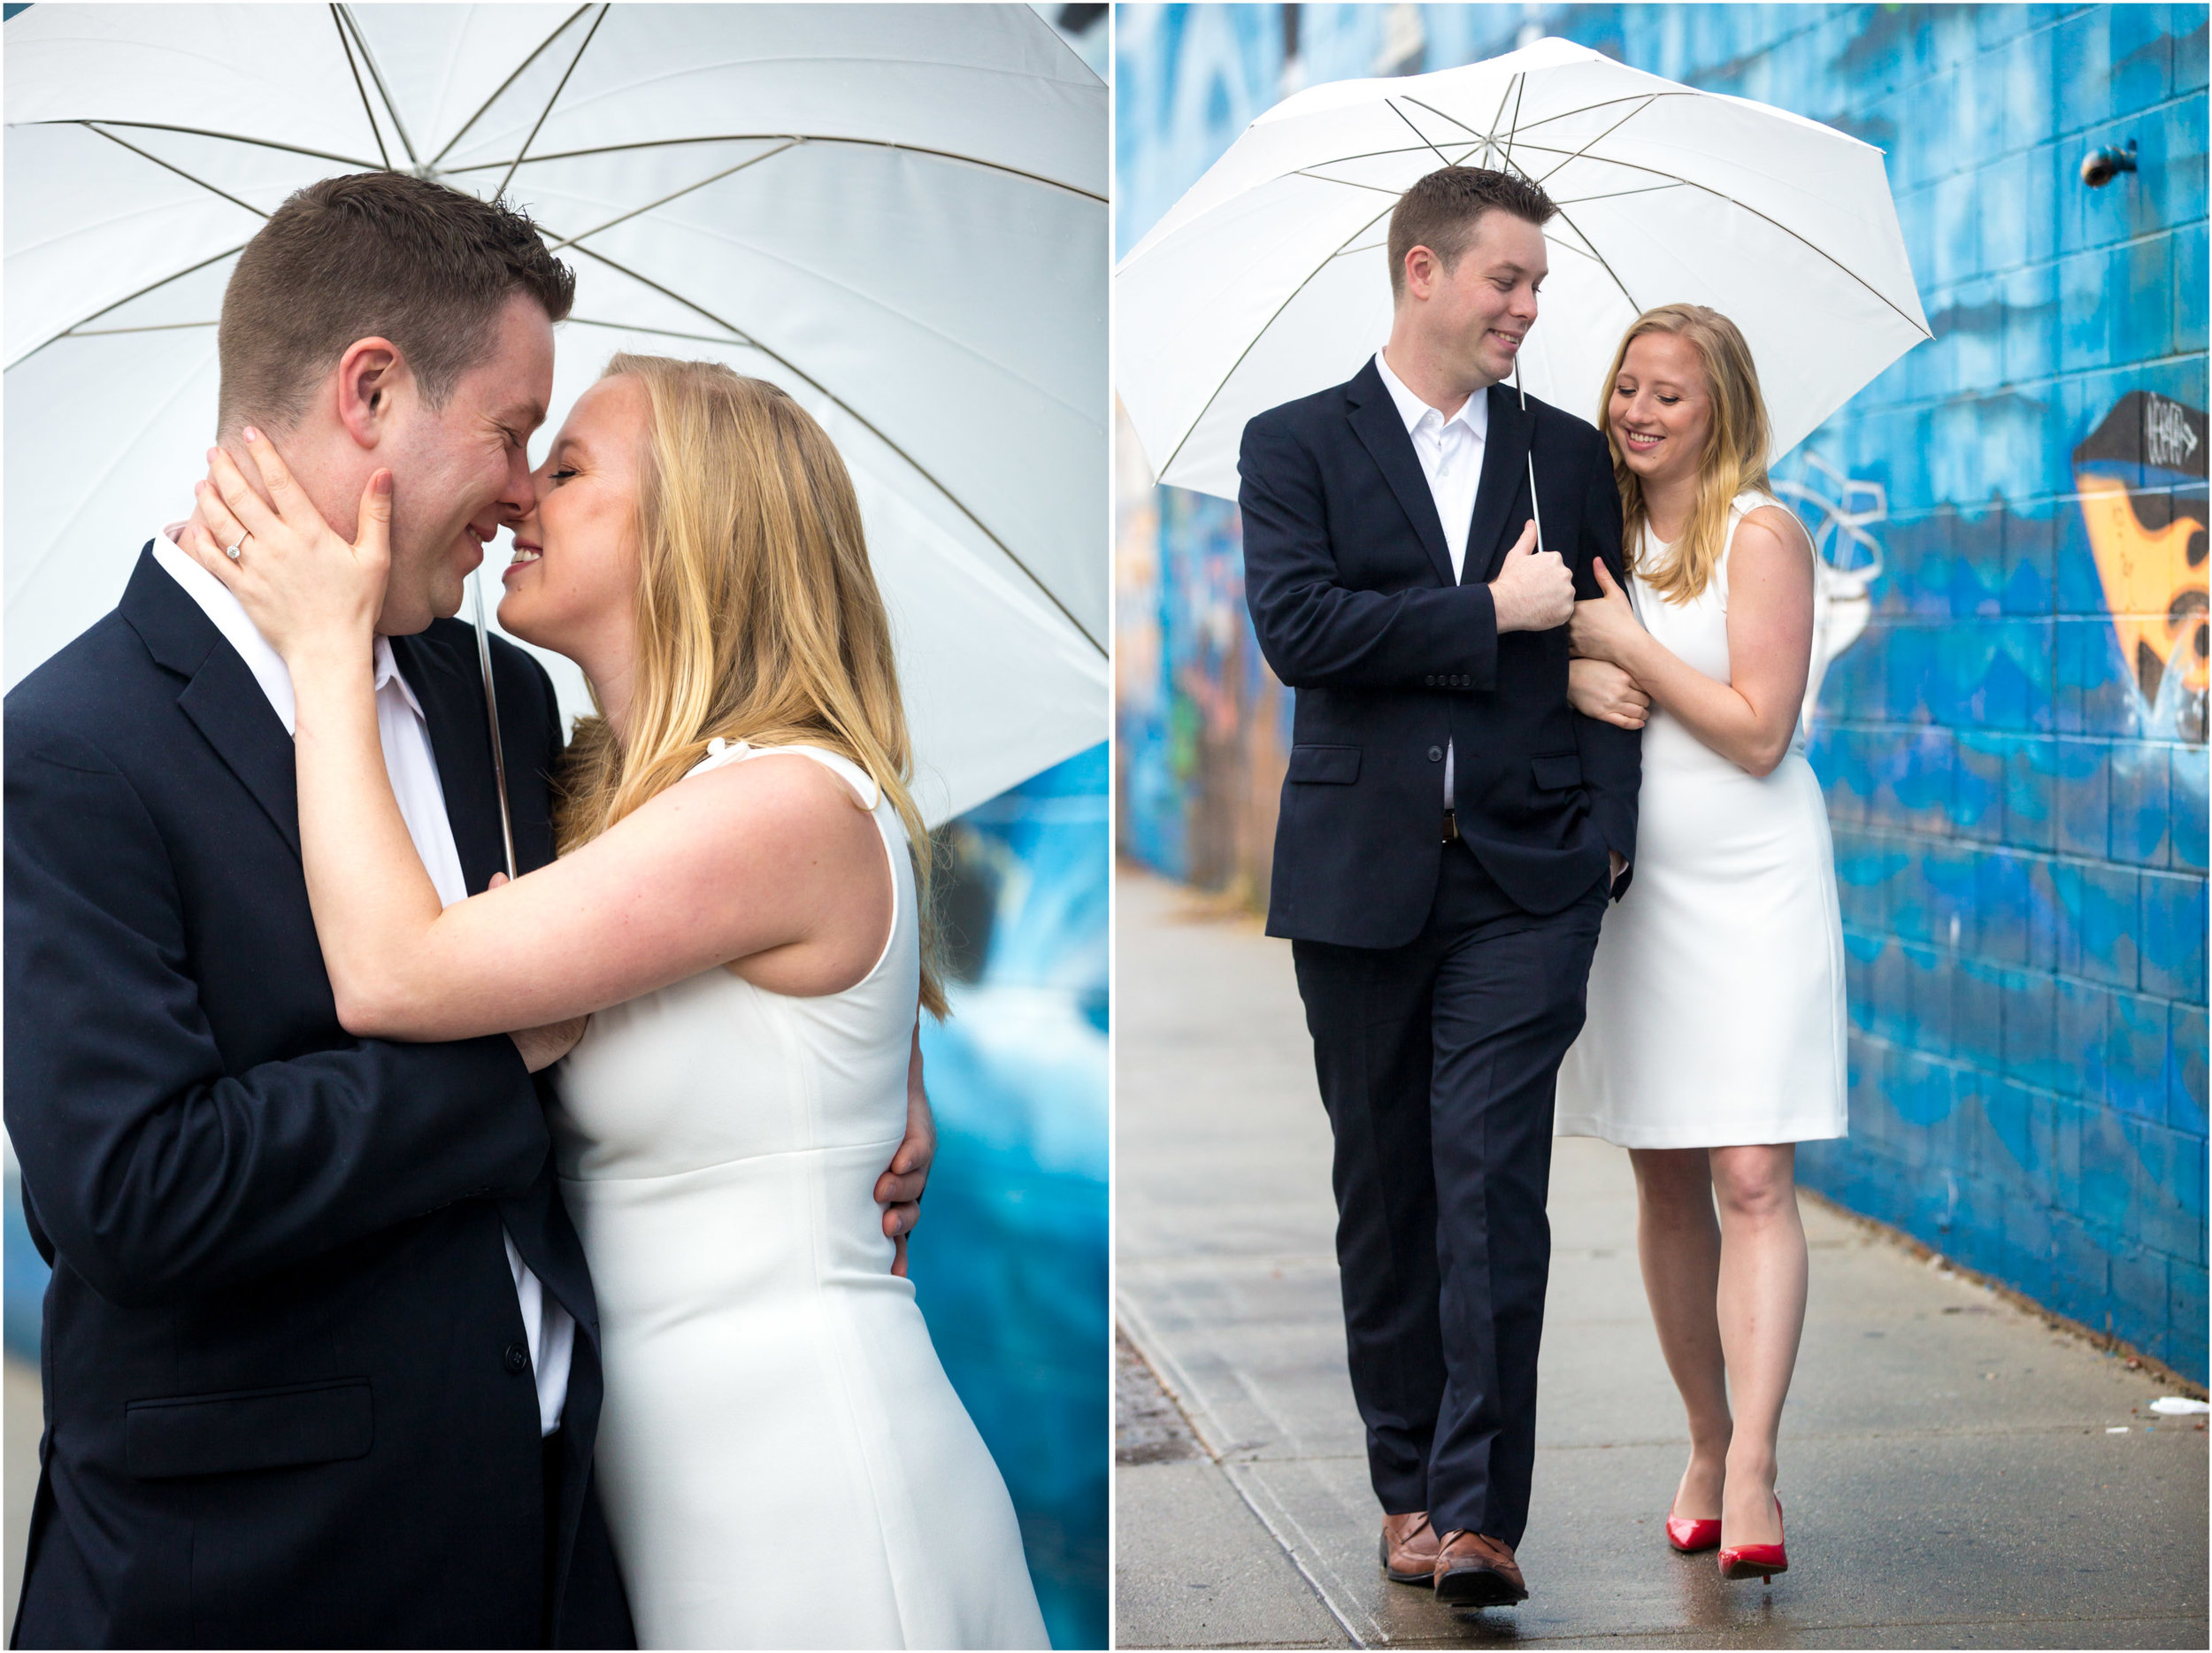 Williamsburg Engagement Shoot Brooklyn NYC Wedding Photographer Photo Shoot Session